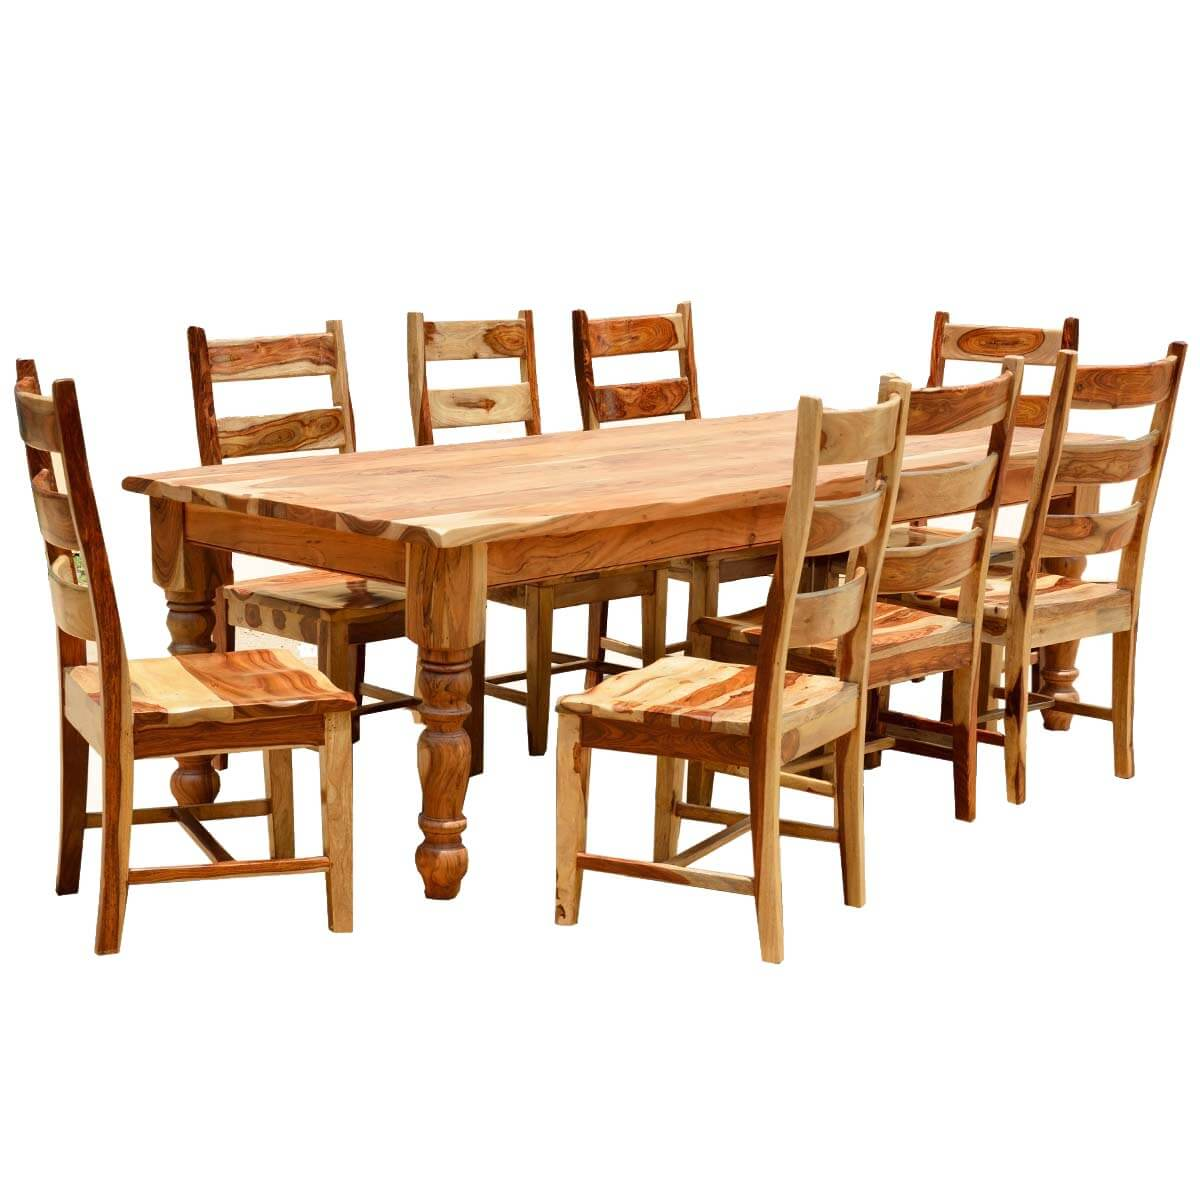 Rustic solid wood farmhouse dining room table chair set for Dining room table sets